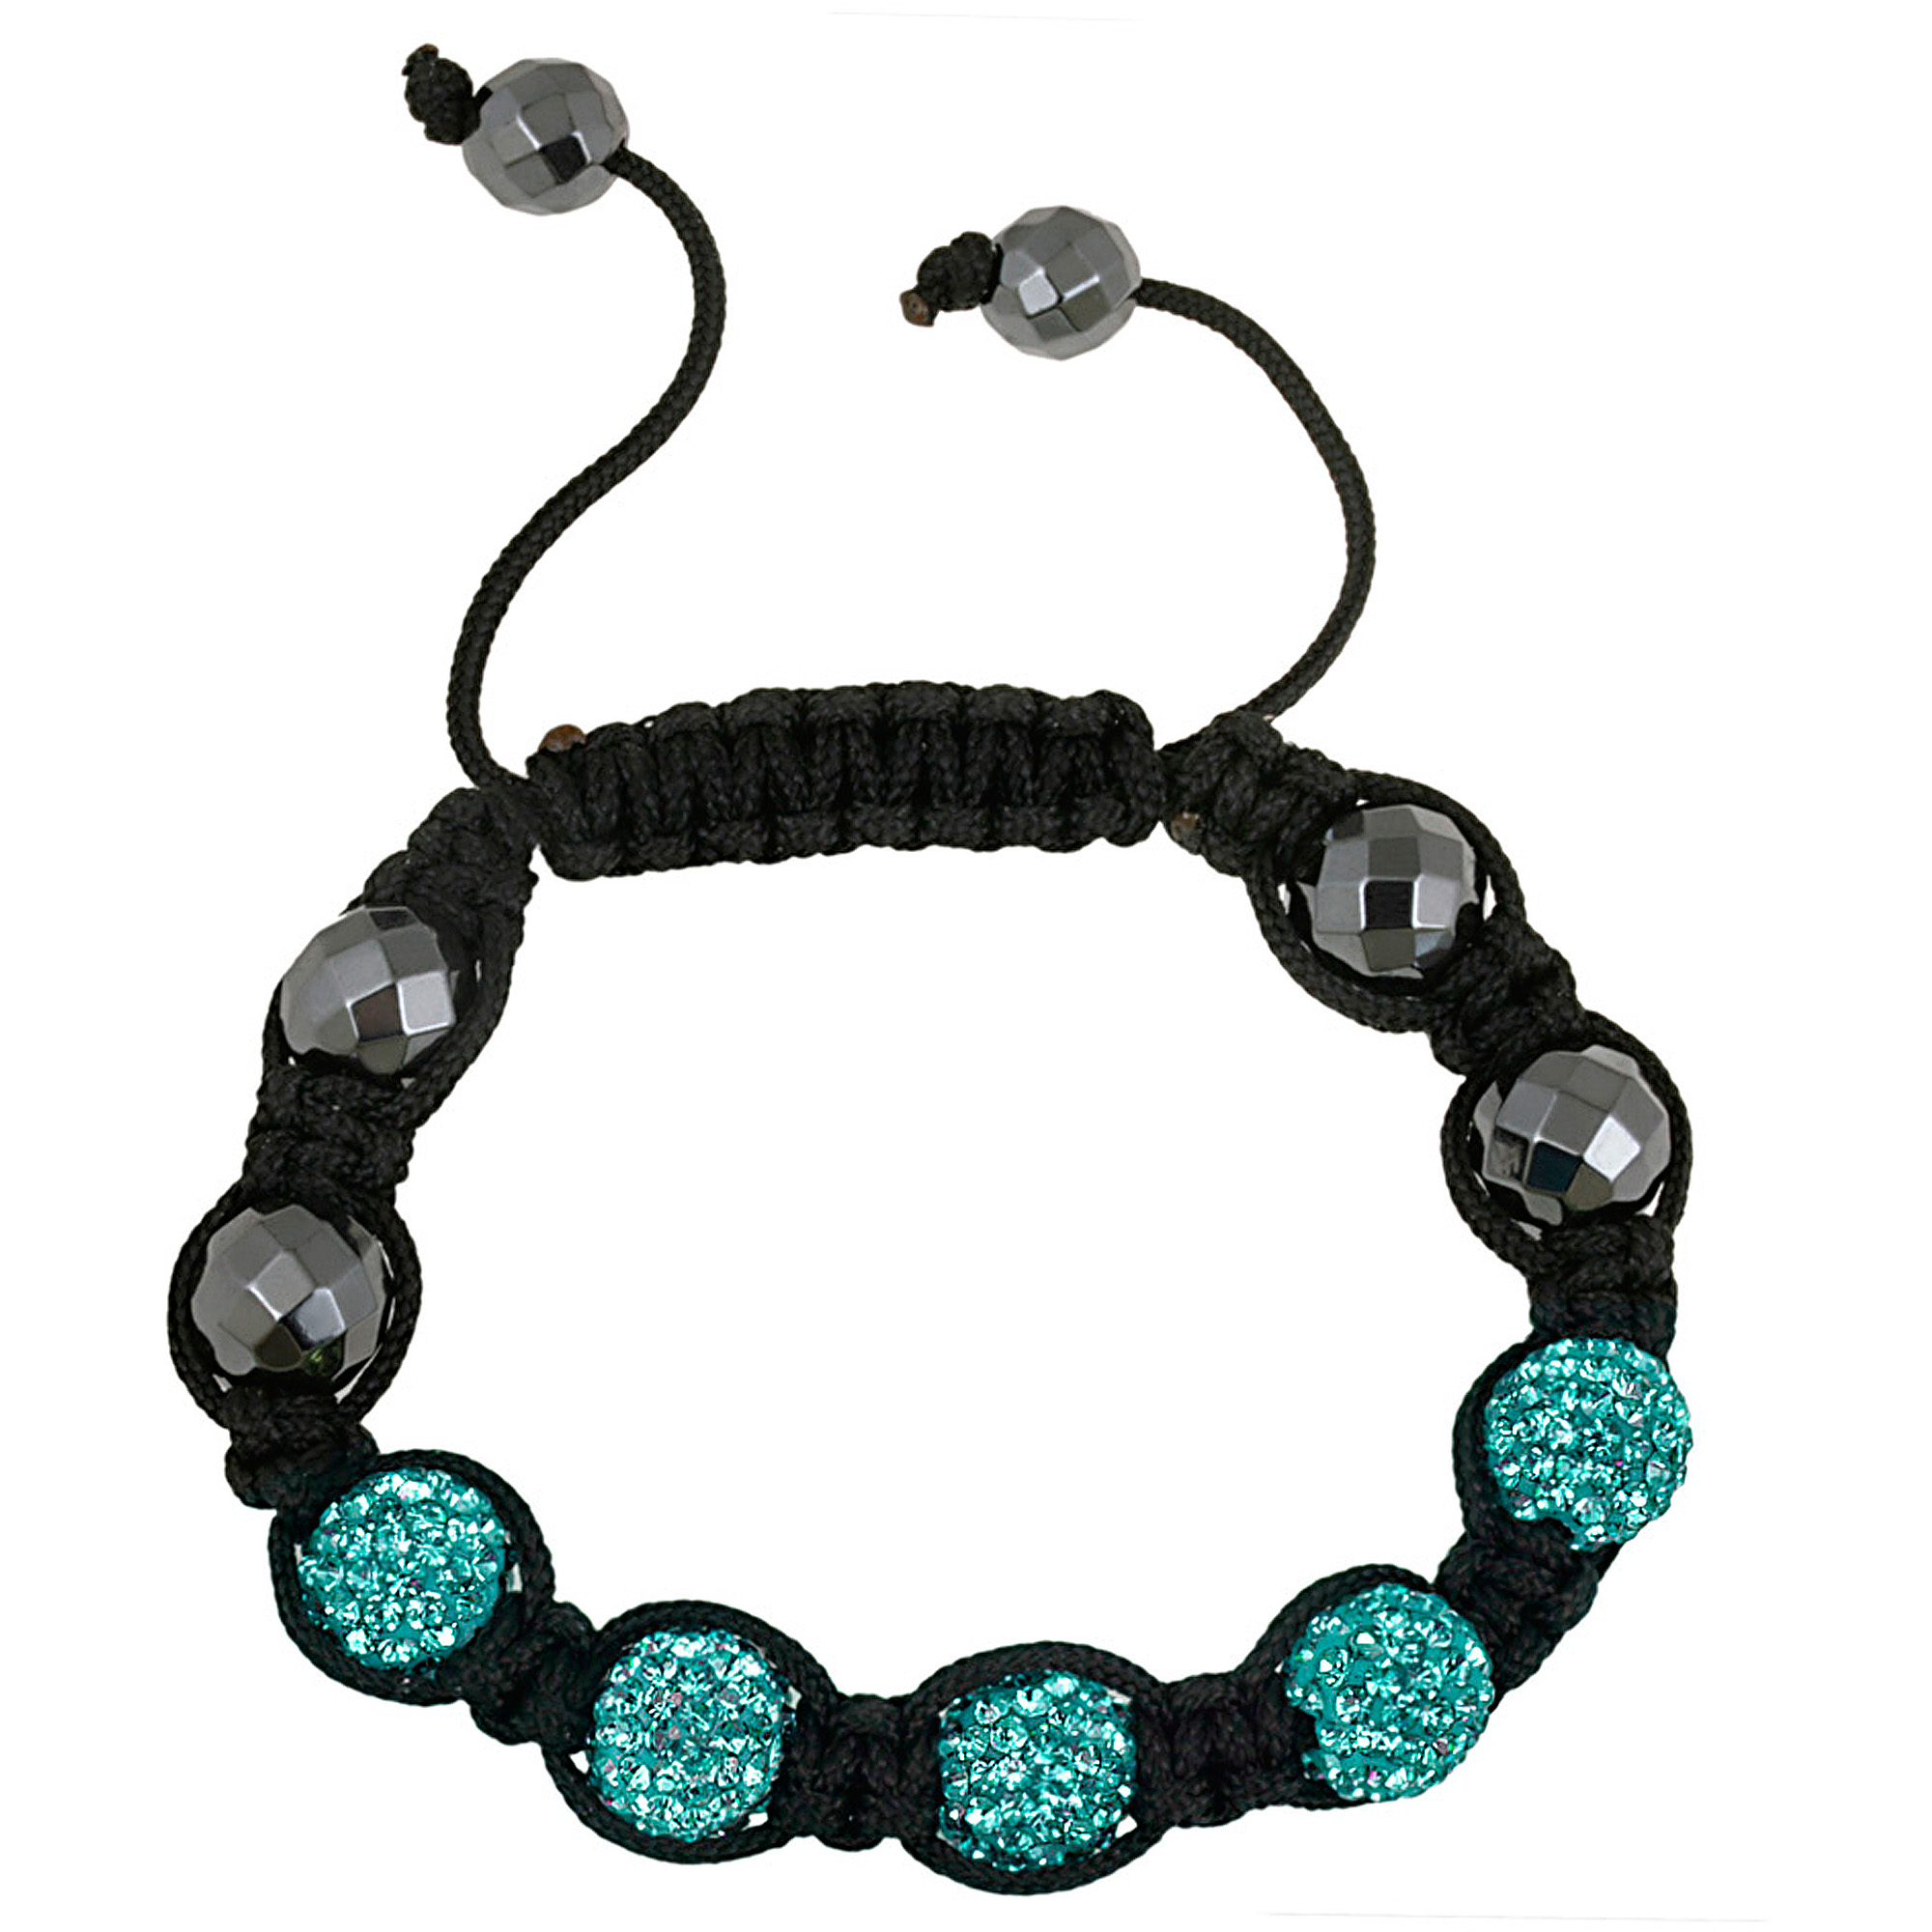 Crystal Aqua Fireball & Hematite 10mm Adjustable Bracelet, 7.5""